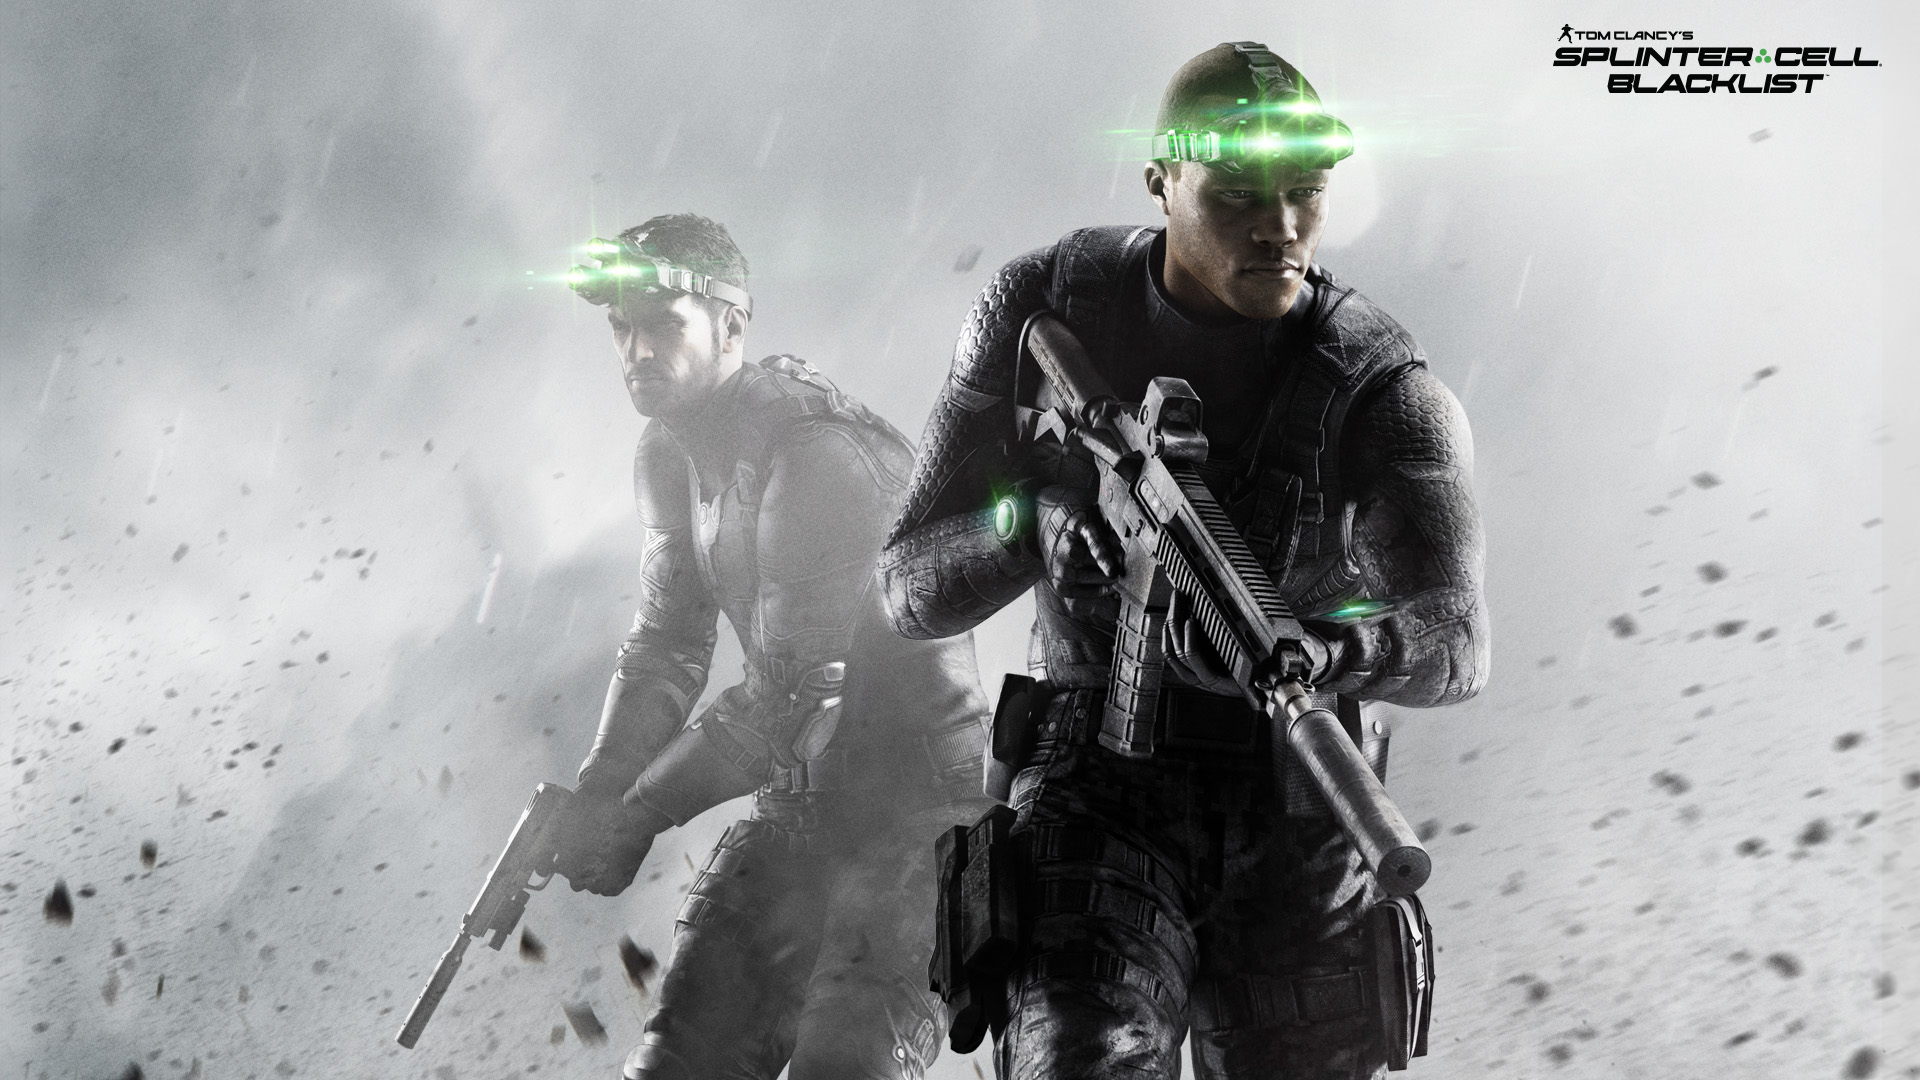 Splinter Cell Blacklist Fondo De Pantalla Hd Fondo De